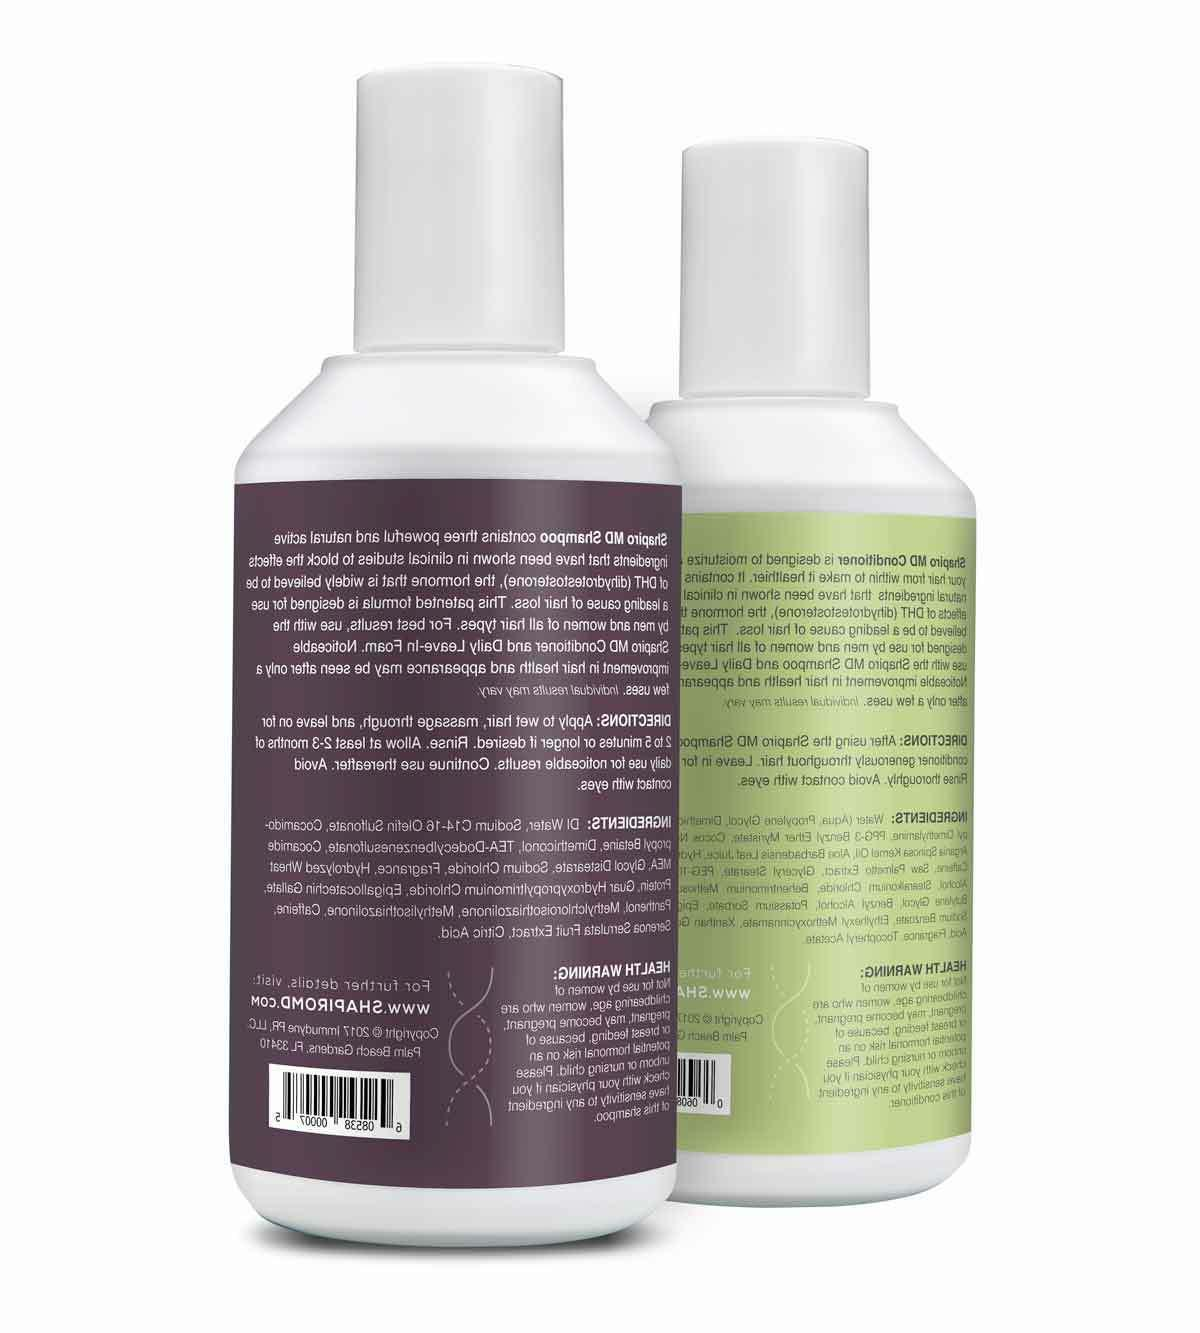 Shapiro MD Shampoo Conditioner DHT for